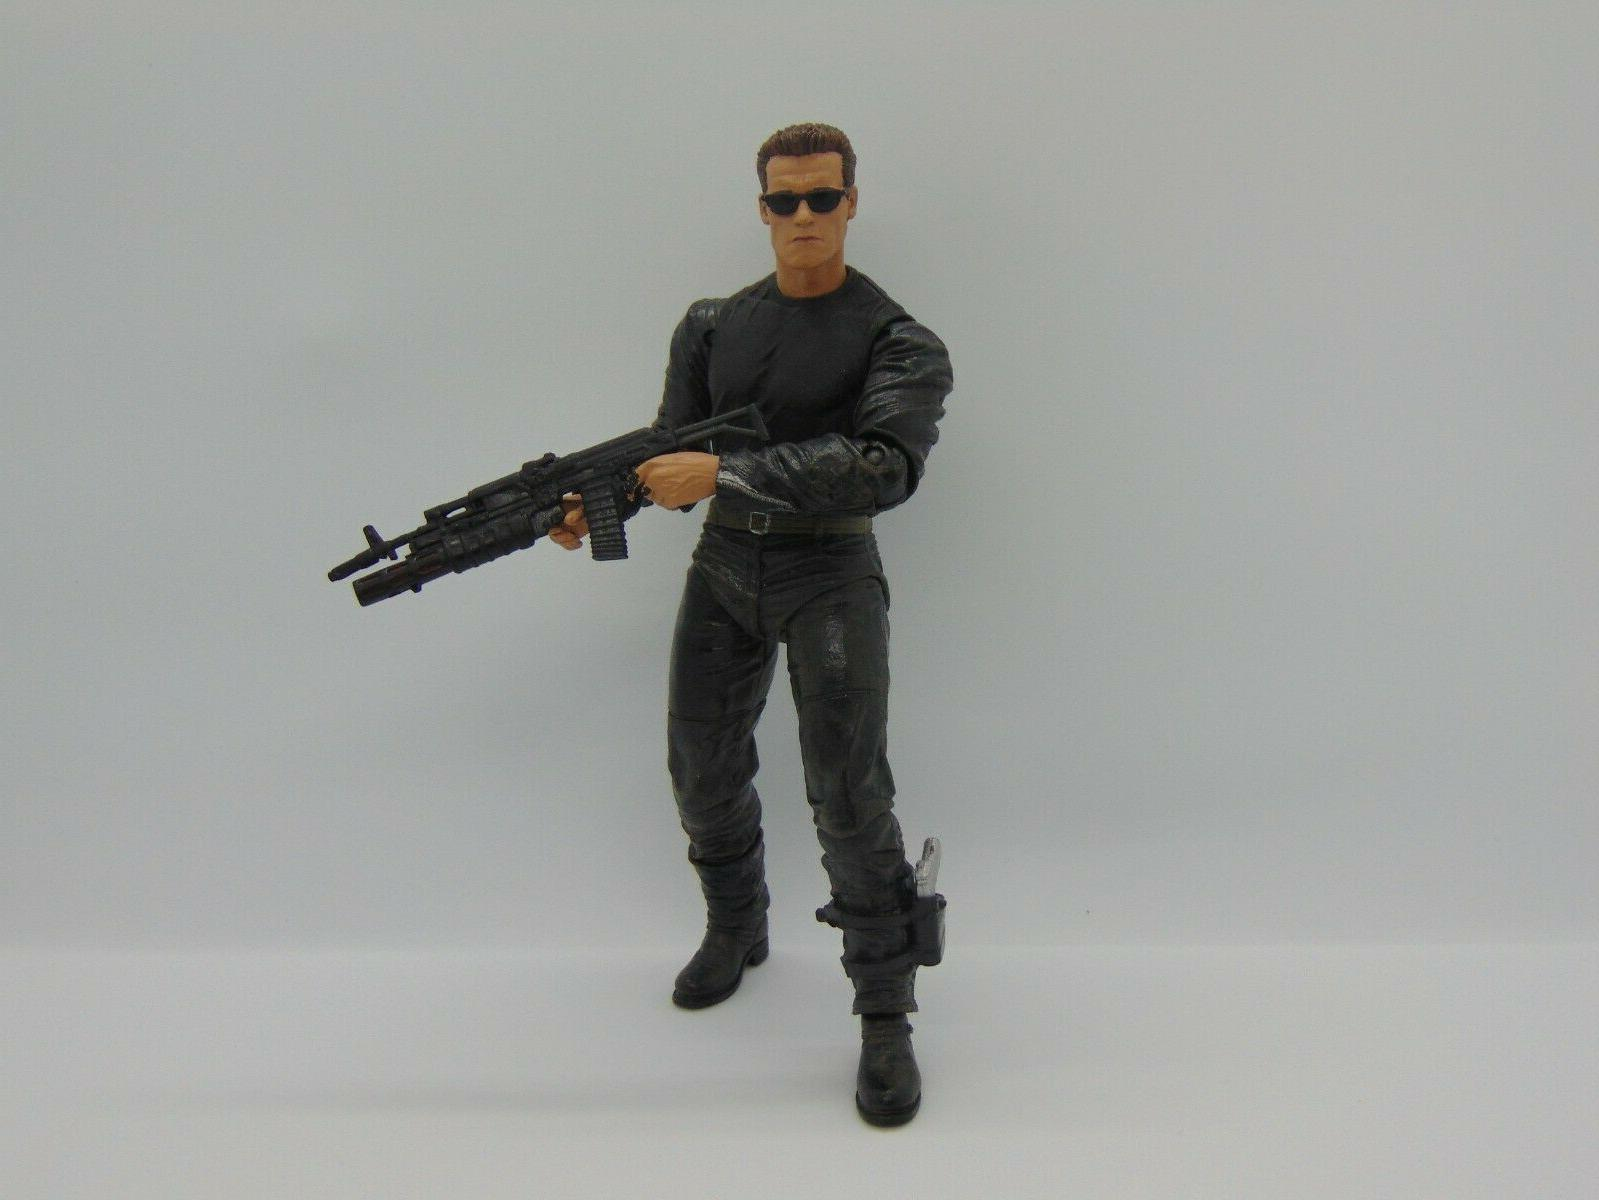 Custom Weapons Pack 1:12 Scale for Action Figures Pistol